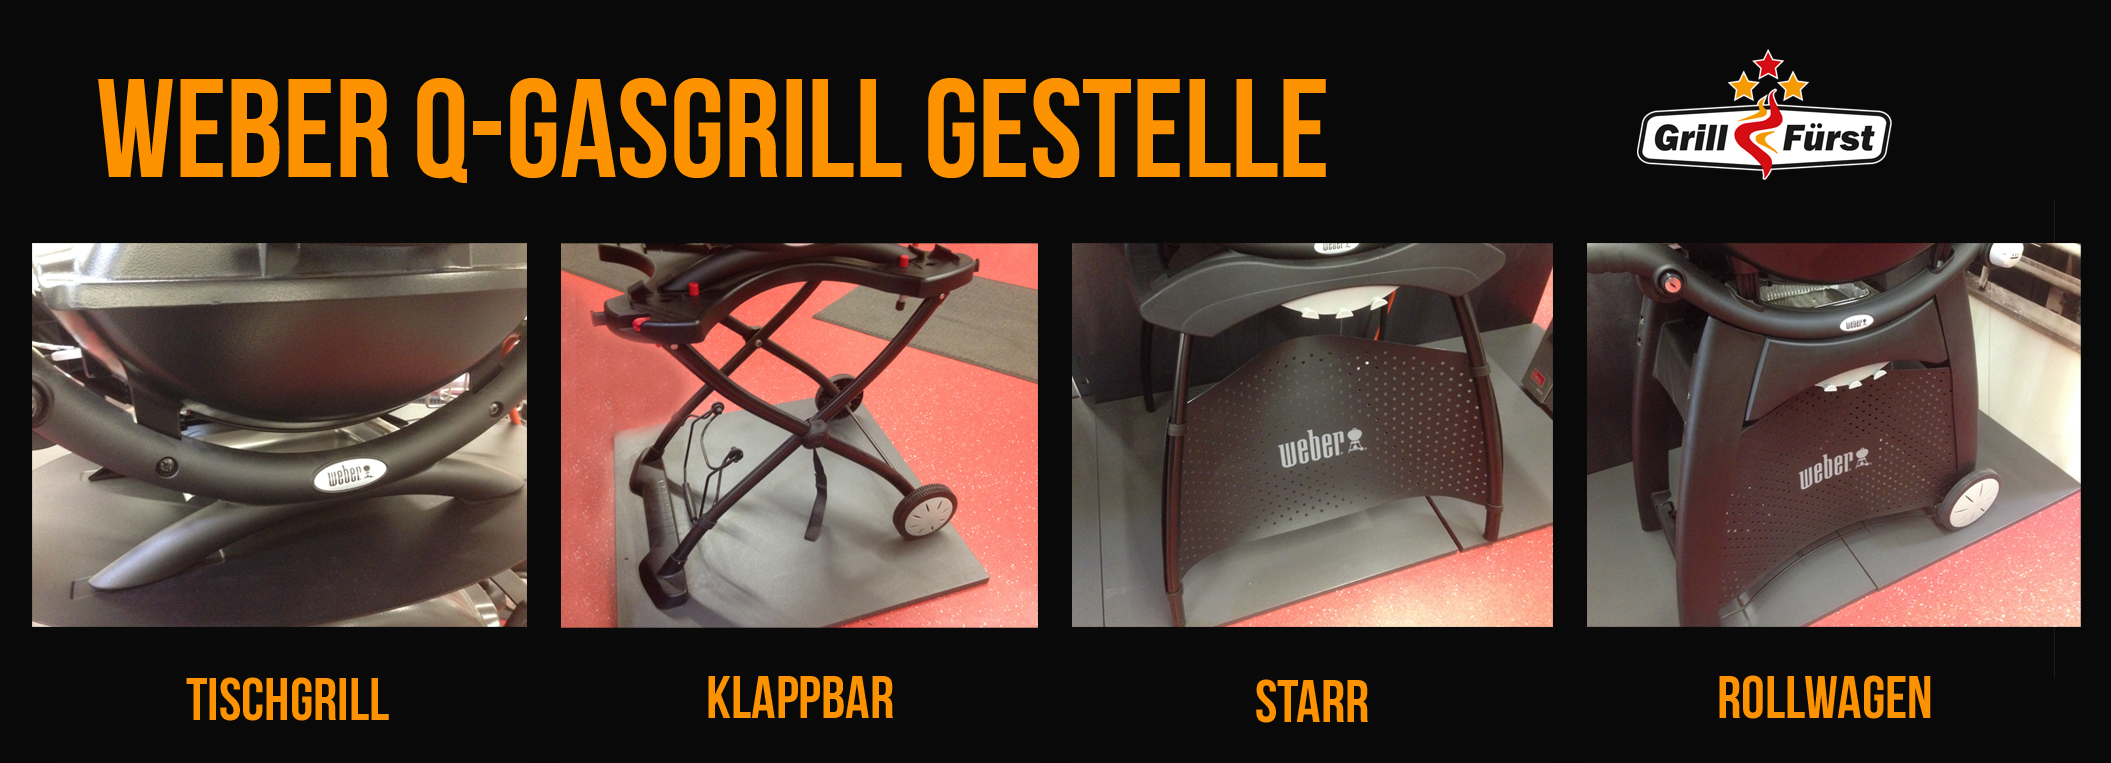 weber gasgrill untergestell kleinster mobiler gasgrill. Black Bedroom Furniture Sets. Home Design Ideas